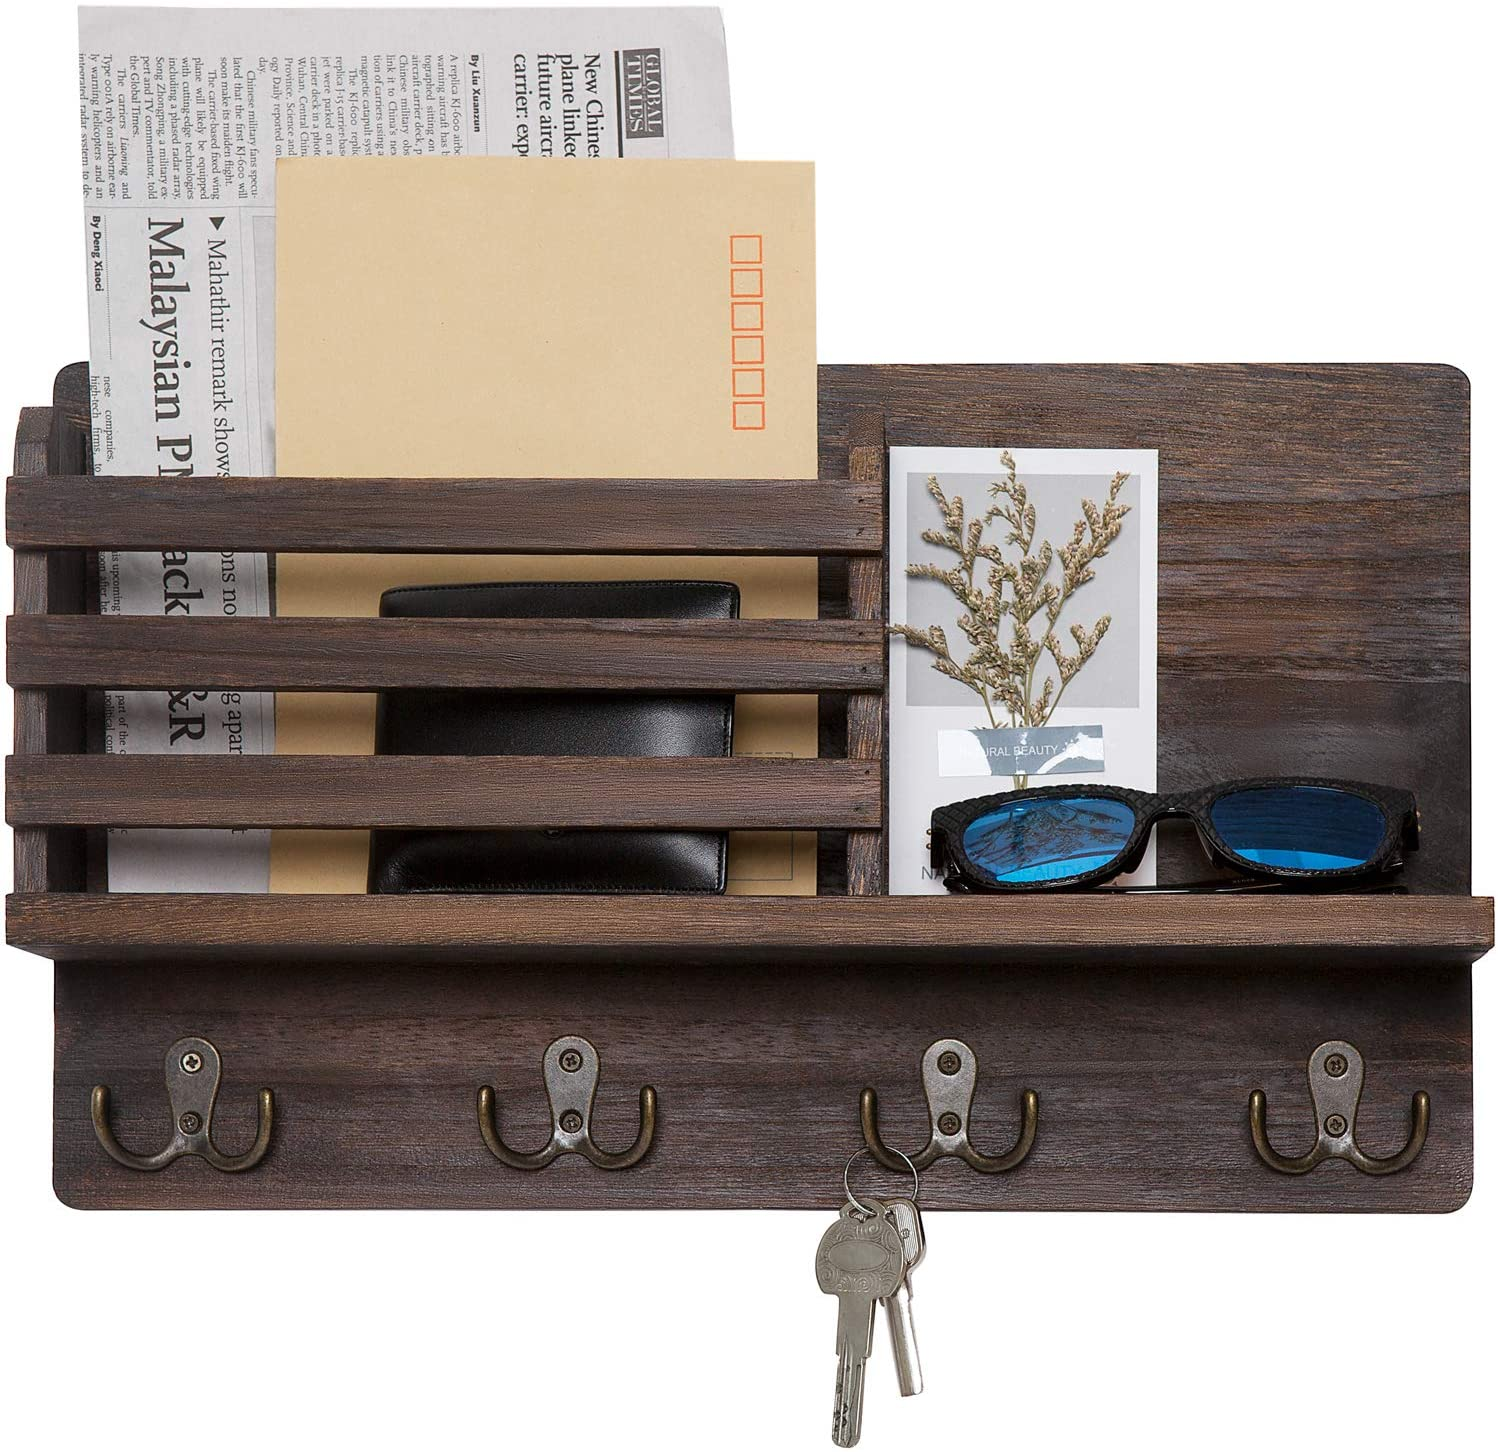 Key Holder For Wall Rustic Hall Decor